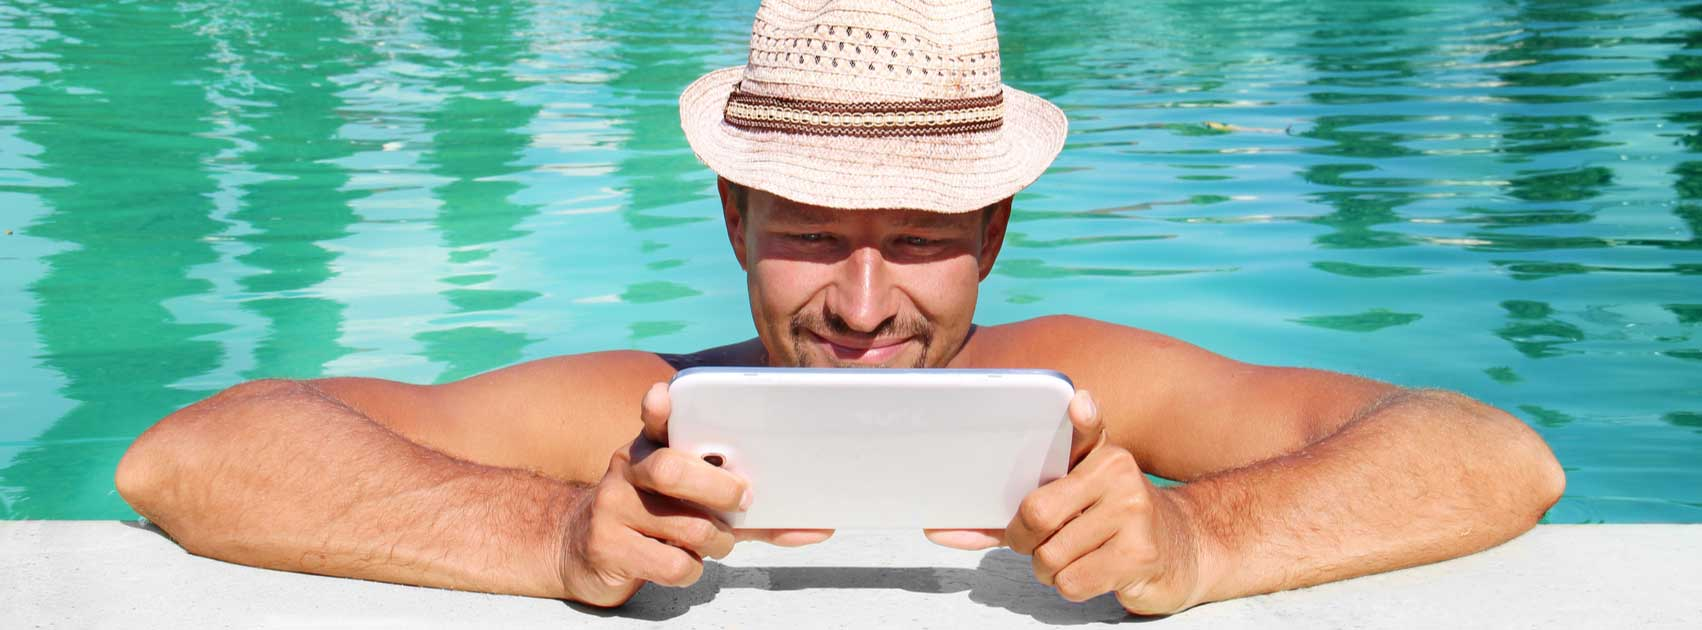 beautiful man by the pool with a tablet - Image